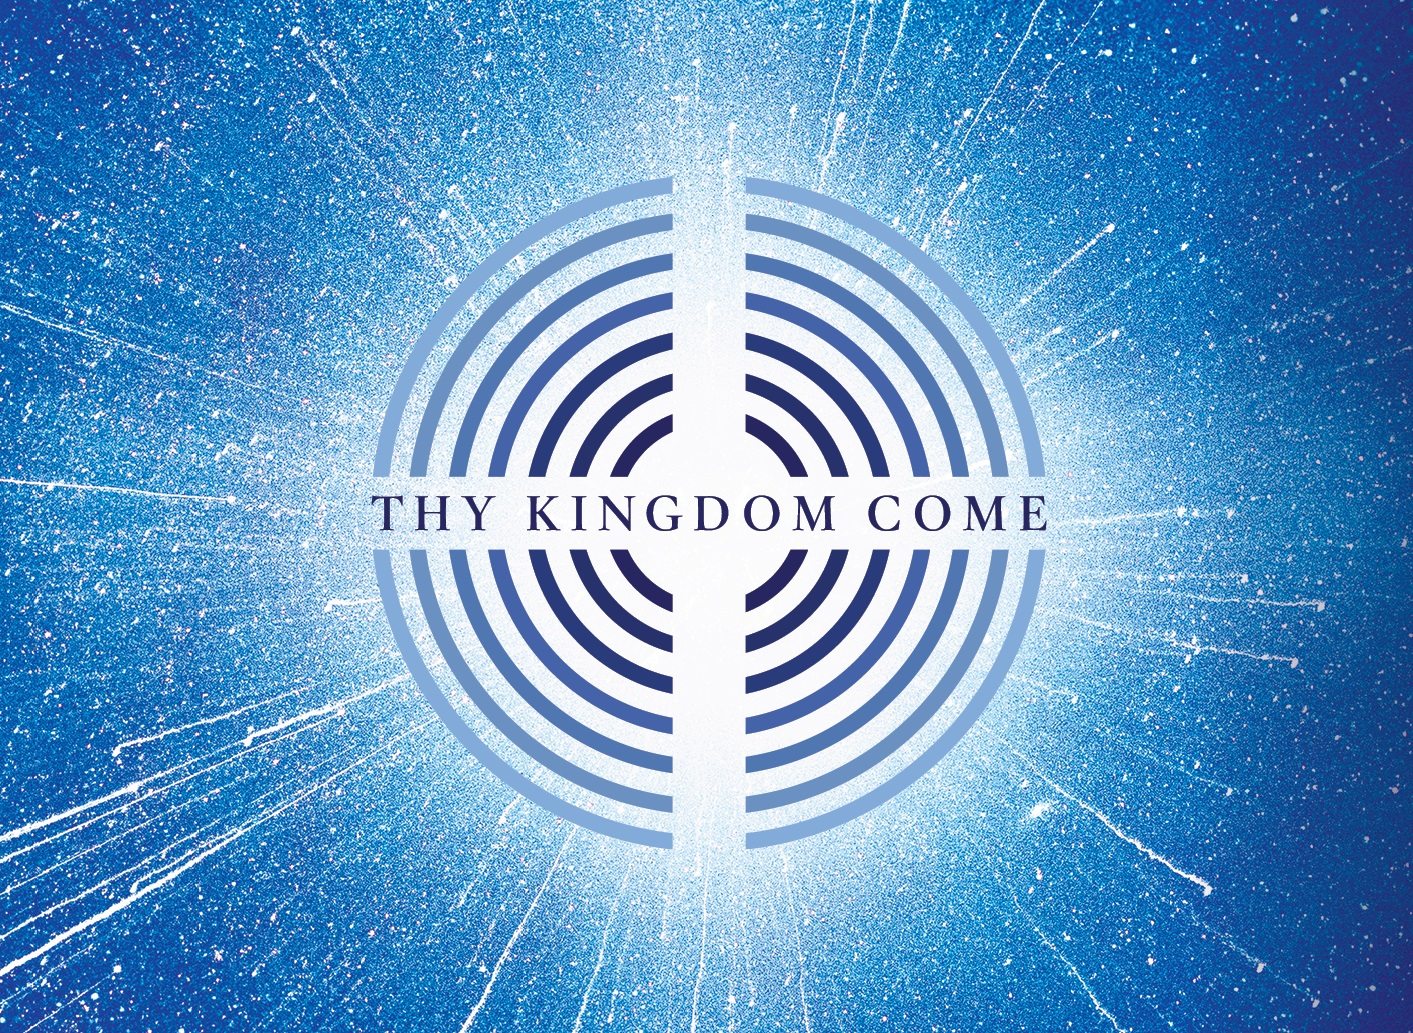 Thy Kingdom Come logo 2020